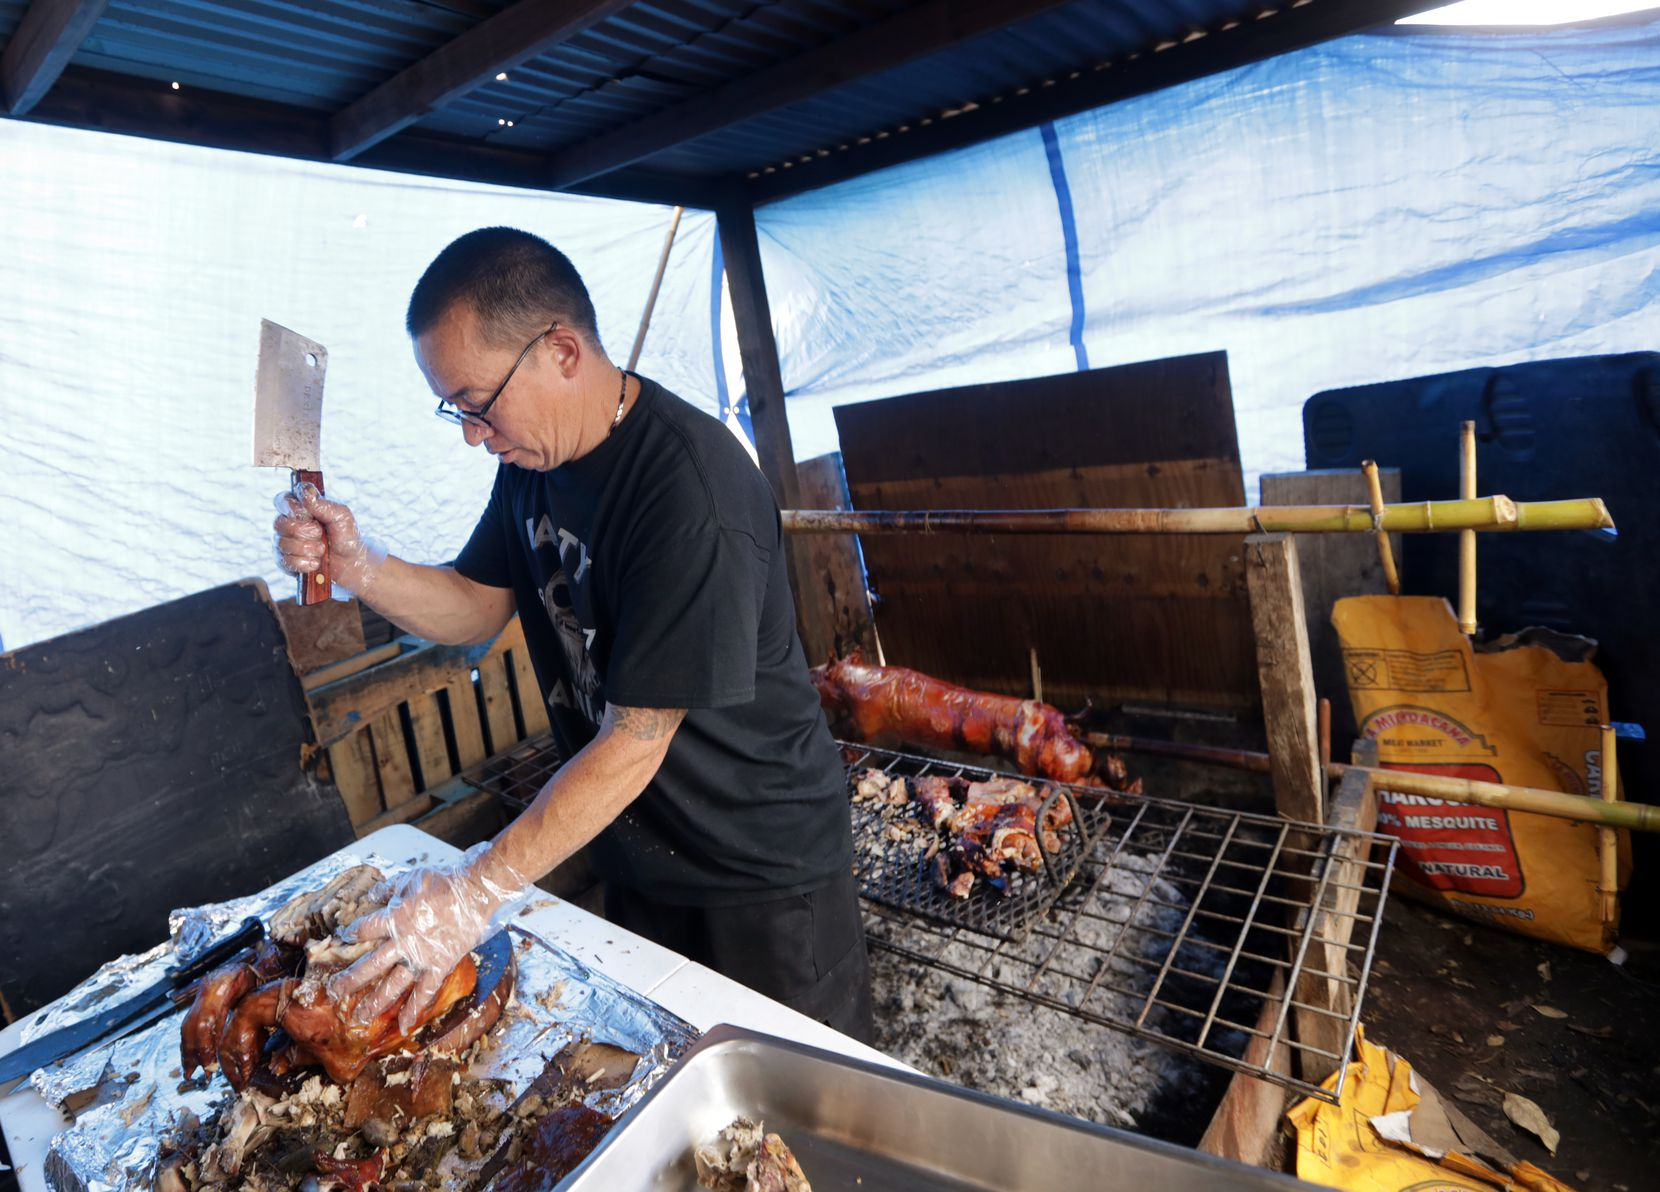 Allen Cook prepares some food at Old Rooster Creek Filipino Asian/American BBQ in Princeton.